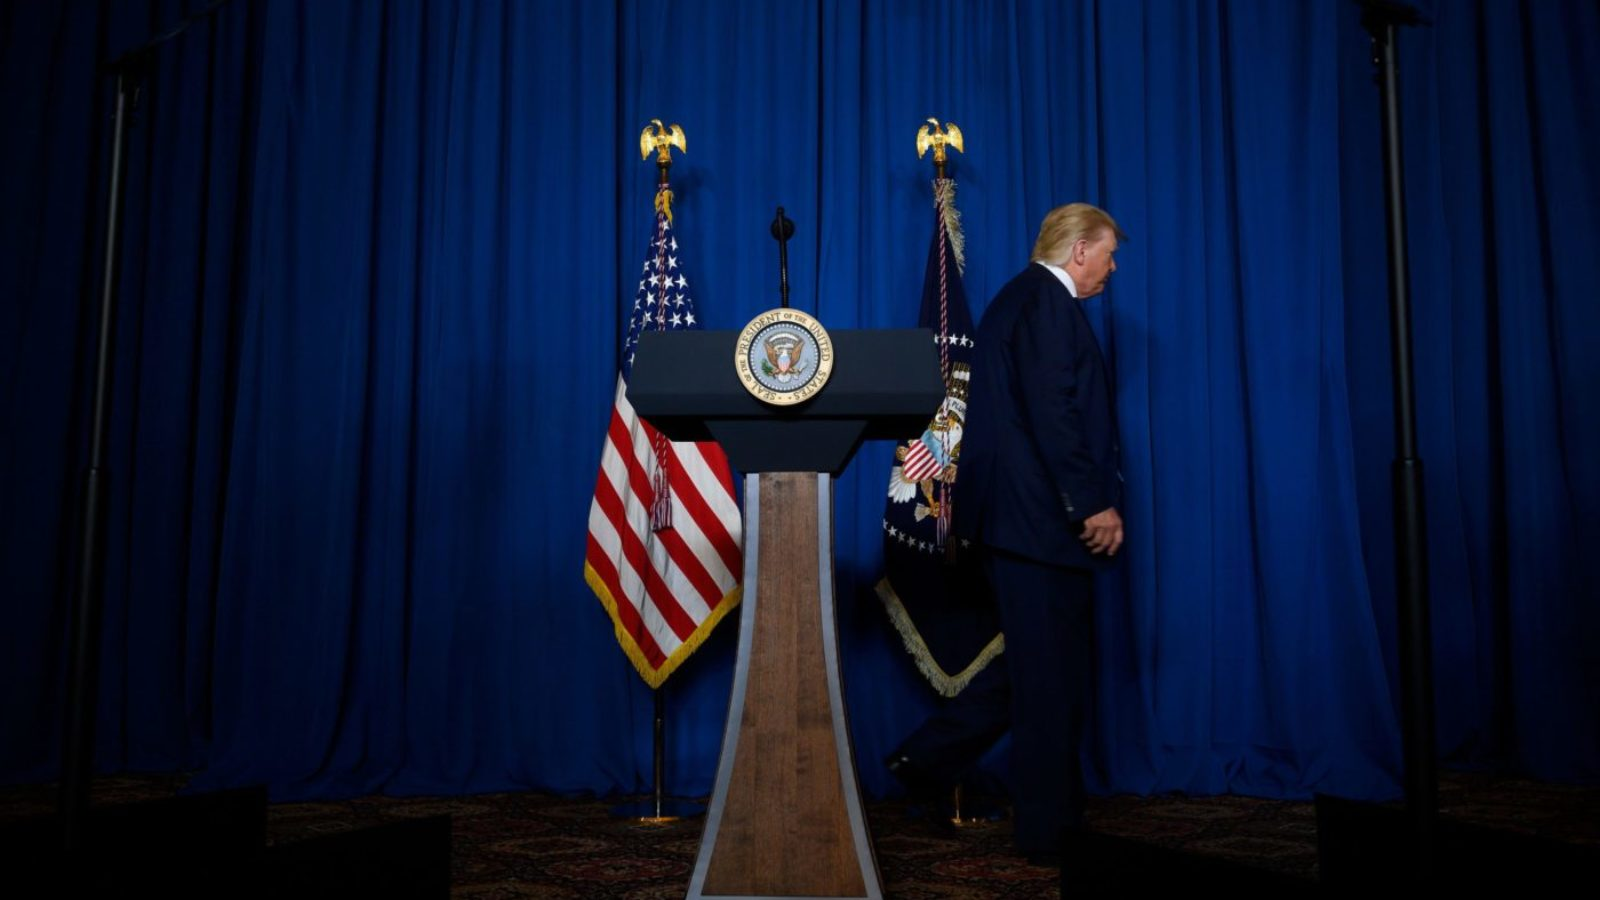 Donal Trump leaves the podium on a darkened stage.